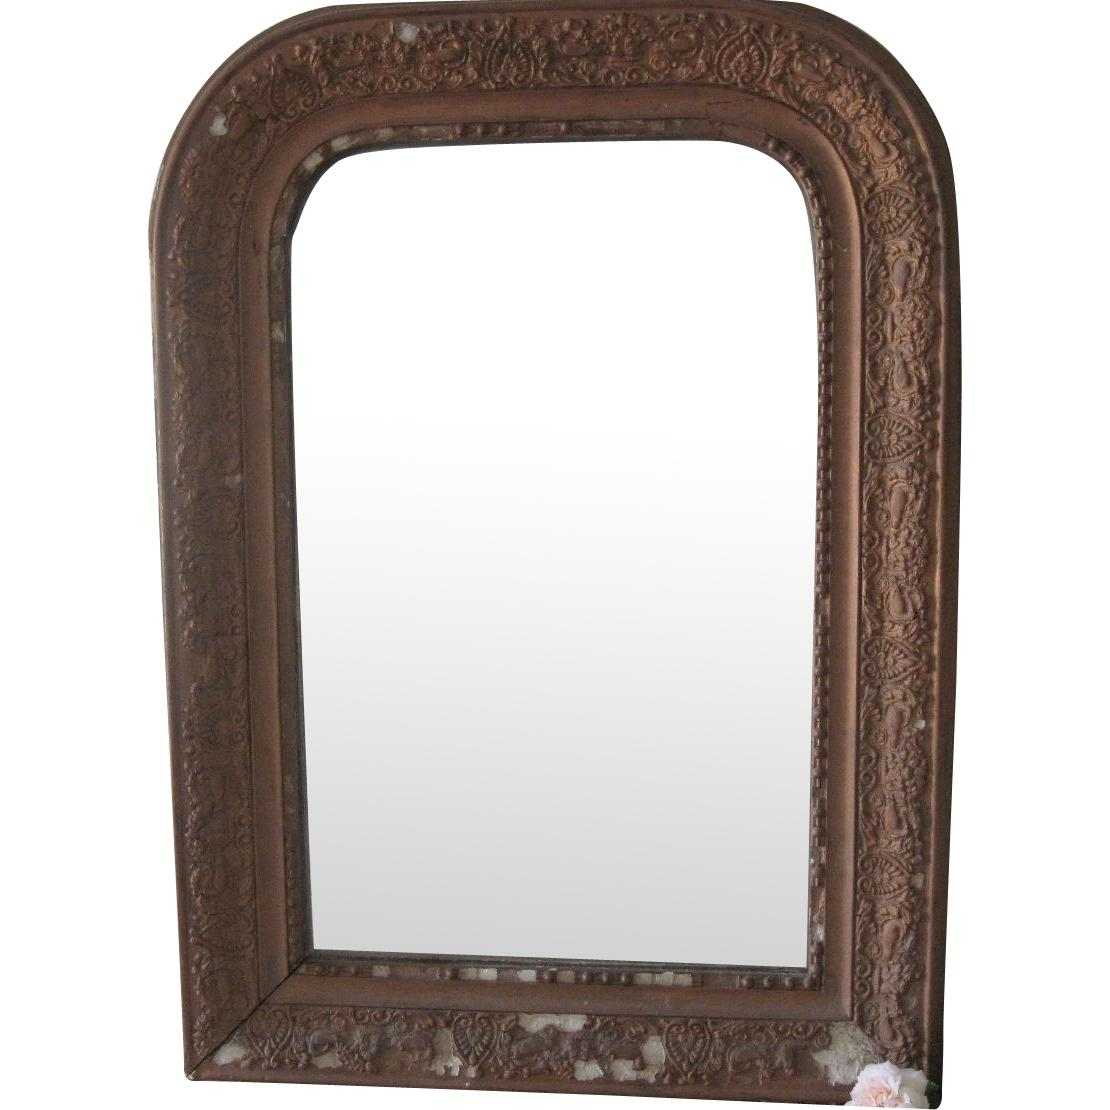 Antique French Mantle Mirror With Decorative Gold Detailing From With Regard To Mantle Mirror (View 10 of 20)